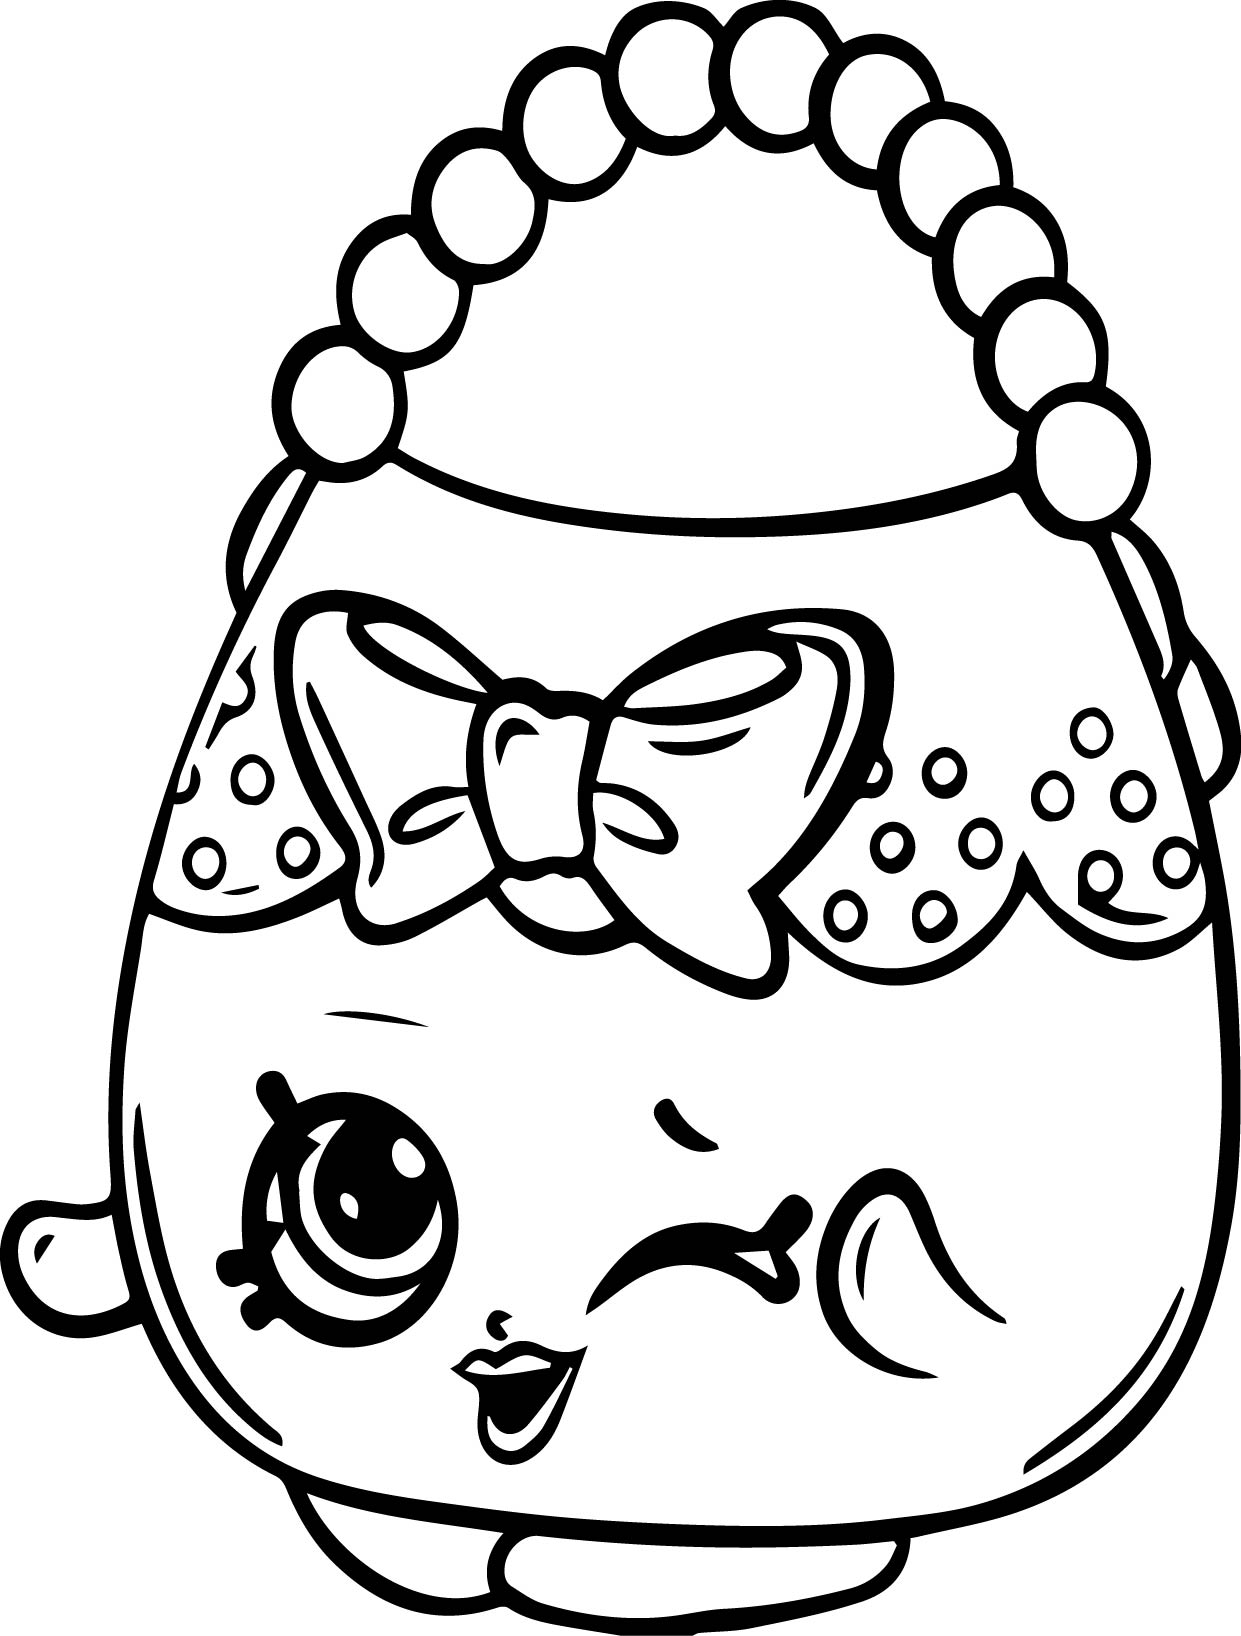 Shopkins color sheets - Handbag Harriet Shopkins Coloring Page